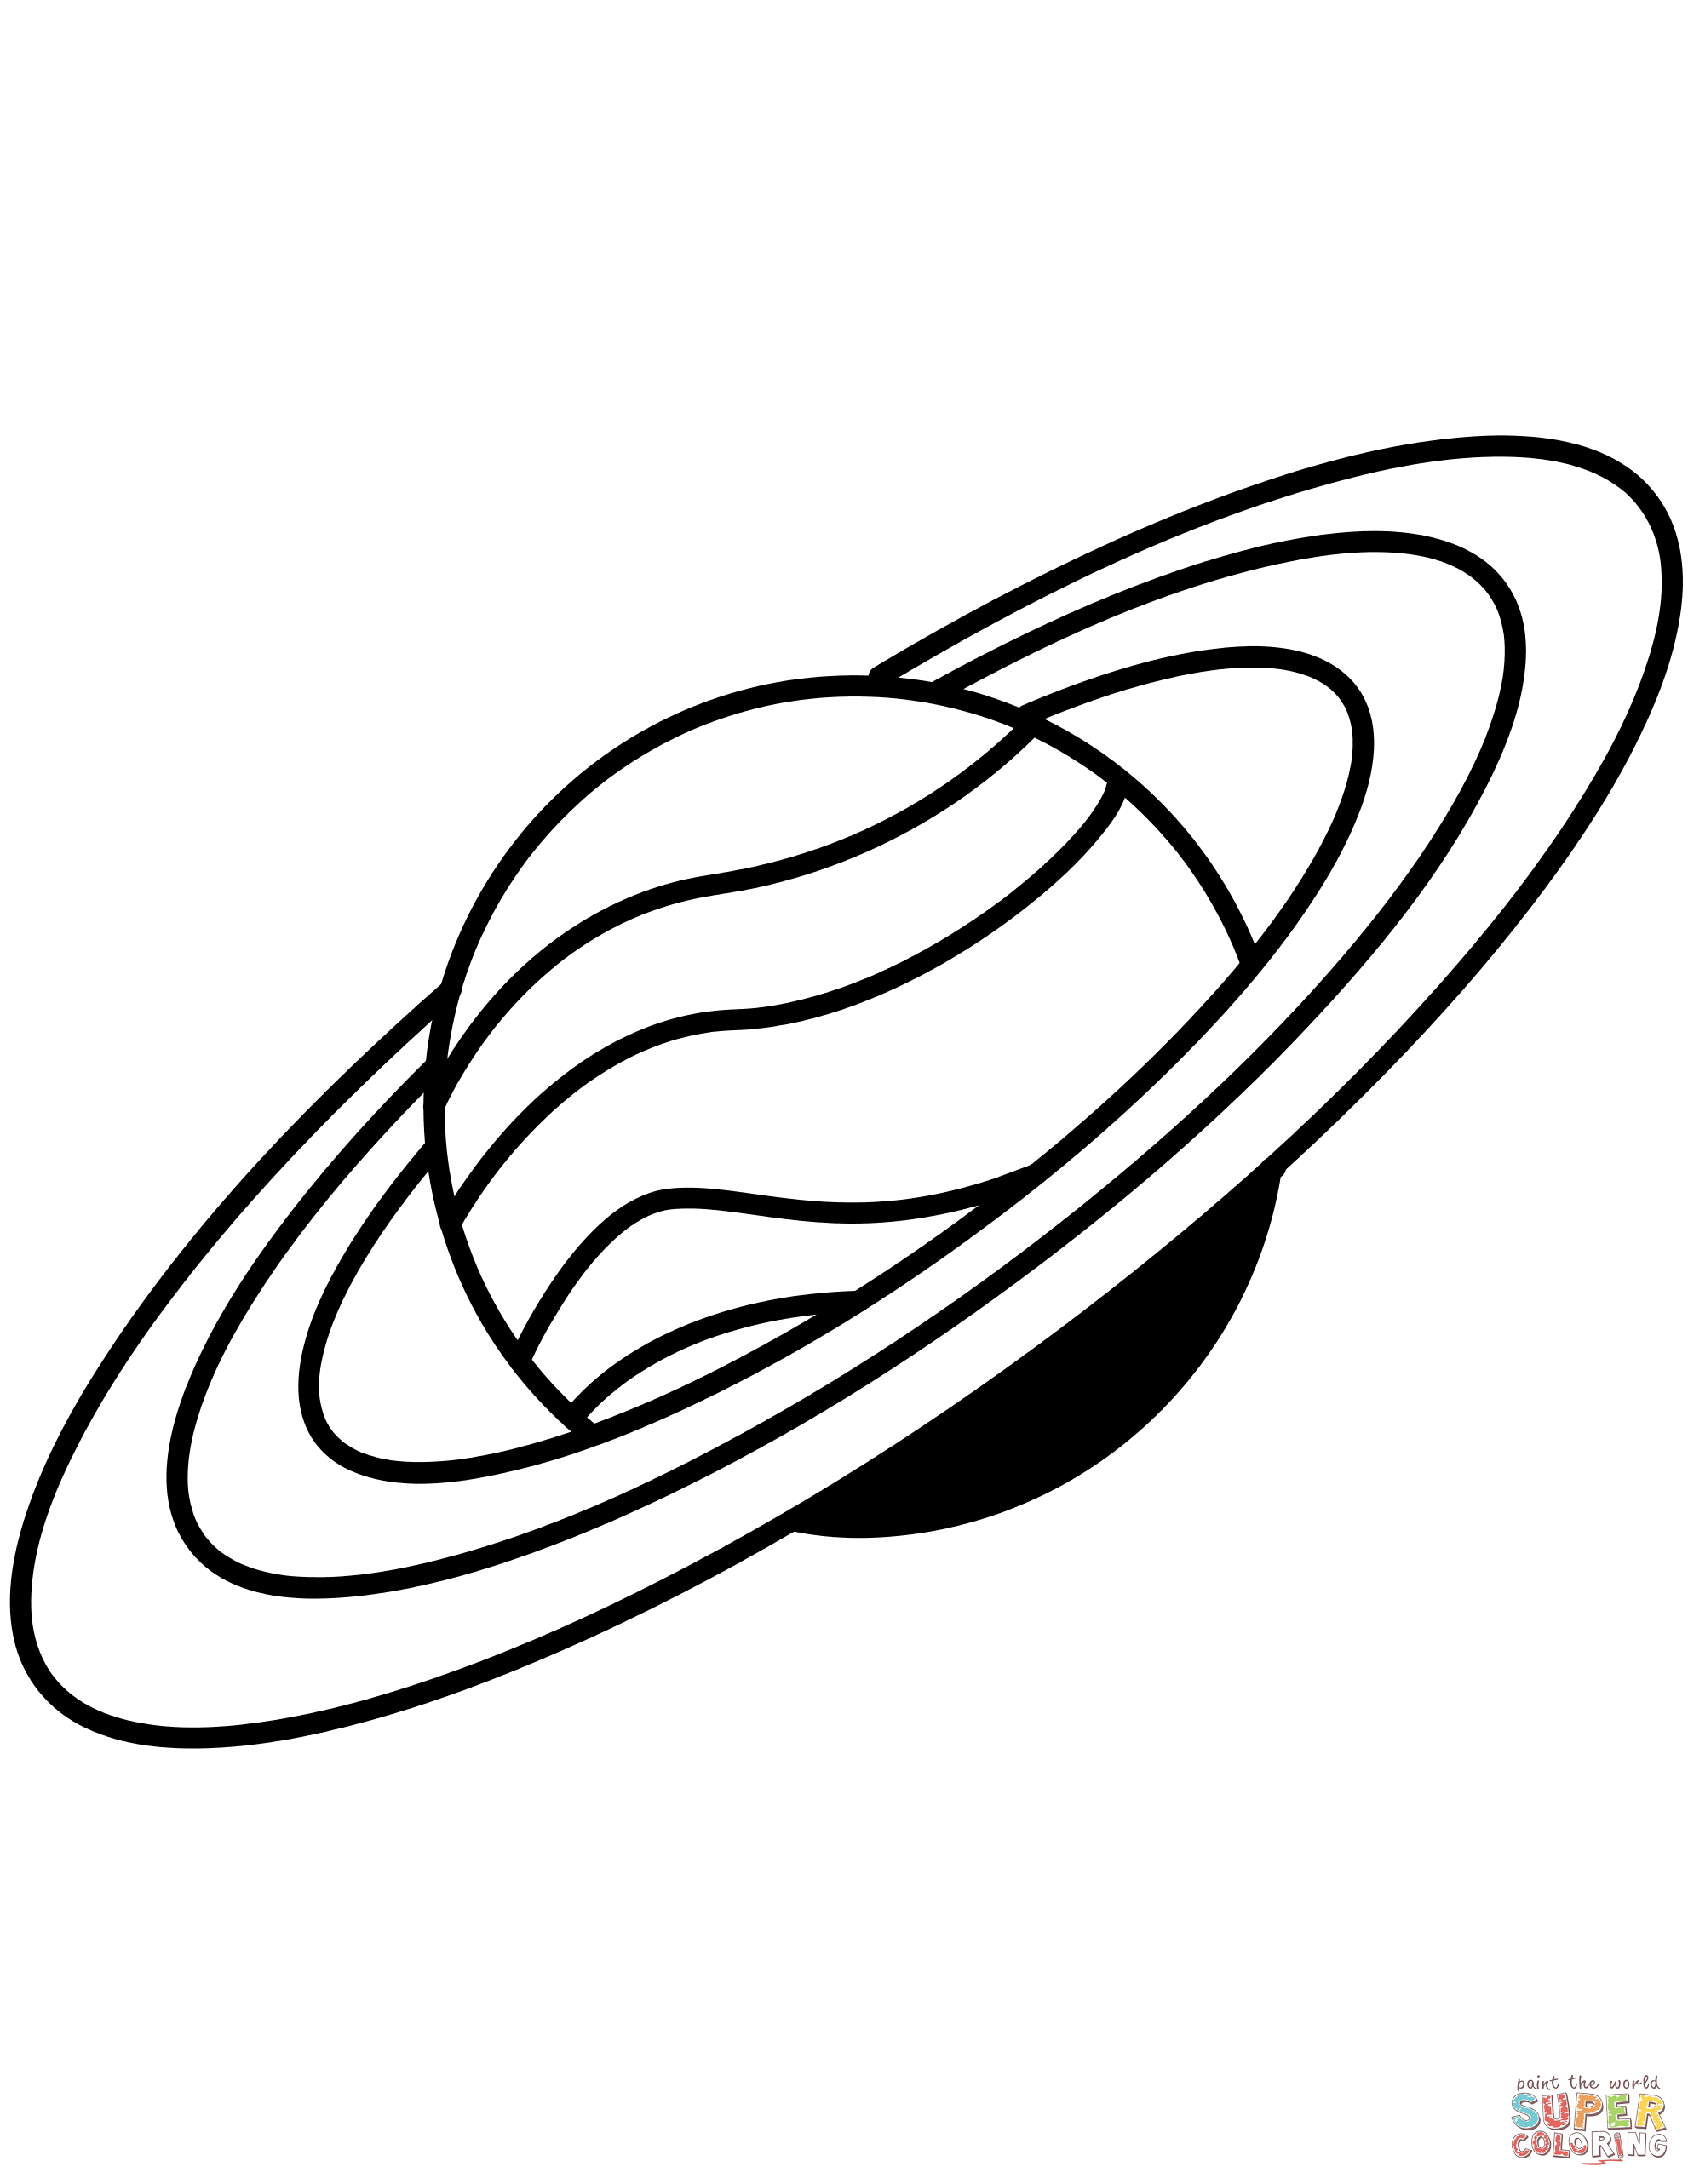 saturn colouring page printable pictures of saturn free download on clipartmag colouring saturn page